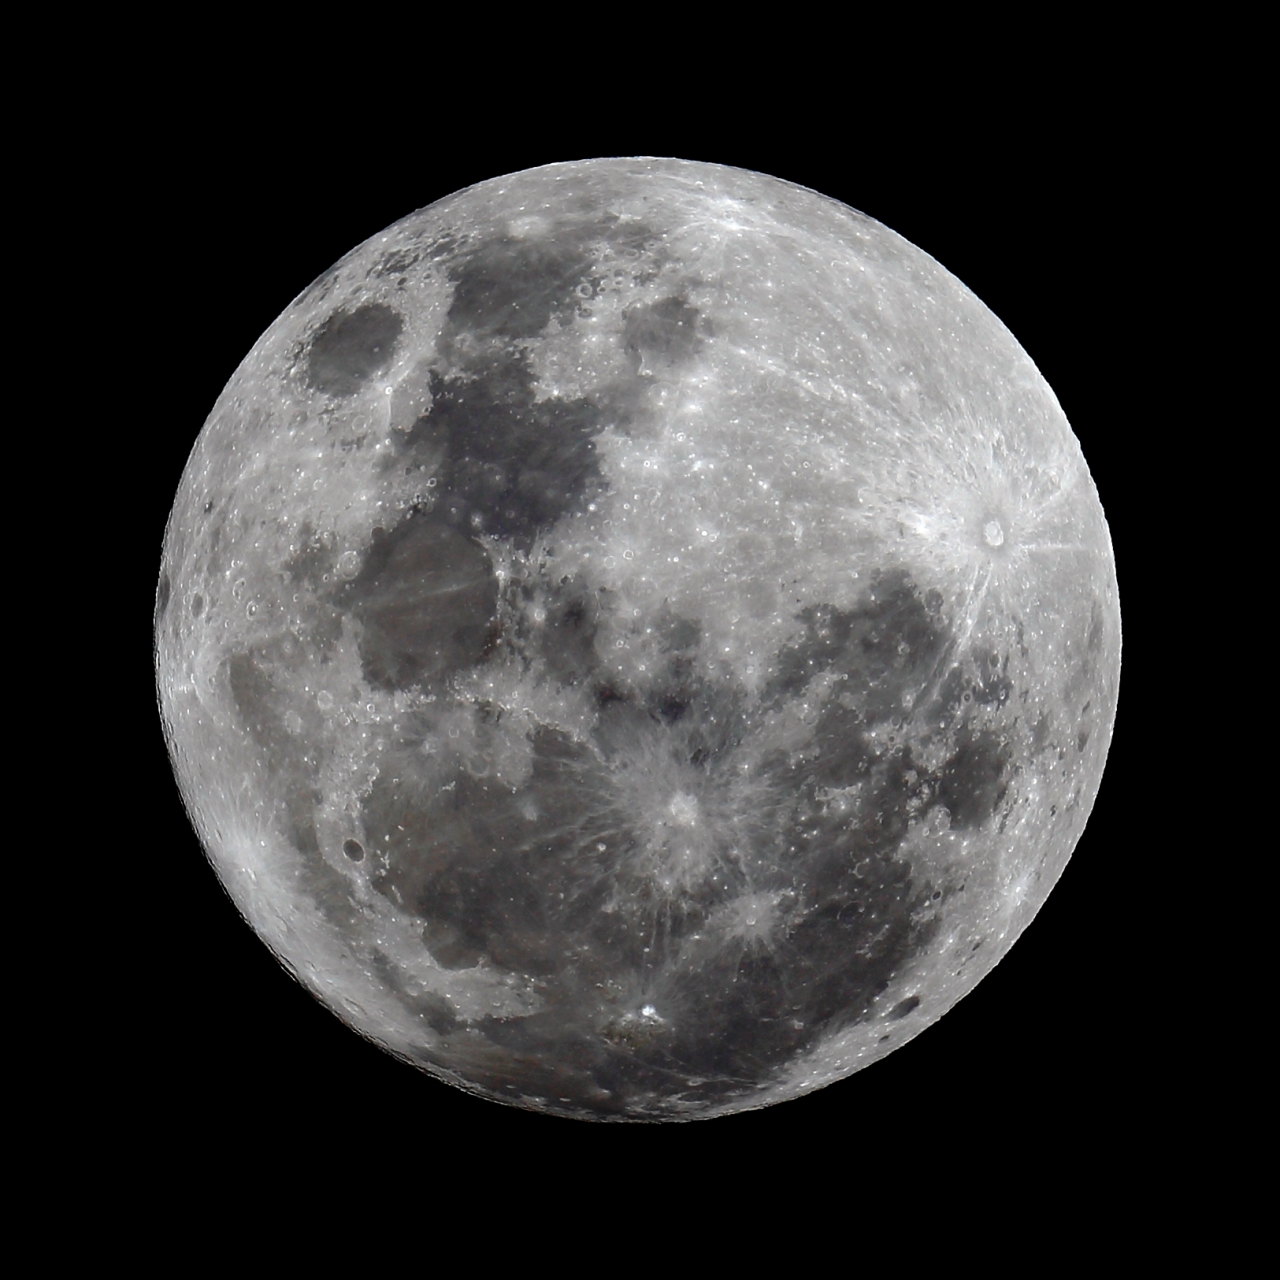 244-supermoon-full-moon-viewed-from-cleveland-14-november-2016-comp-wr